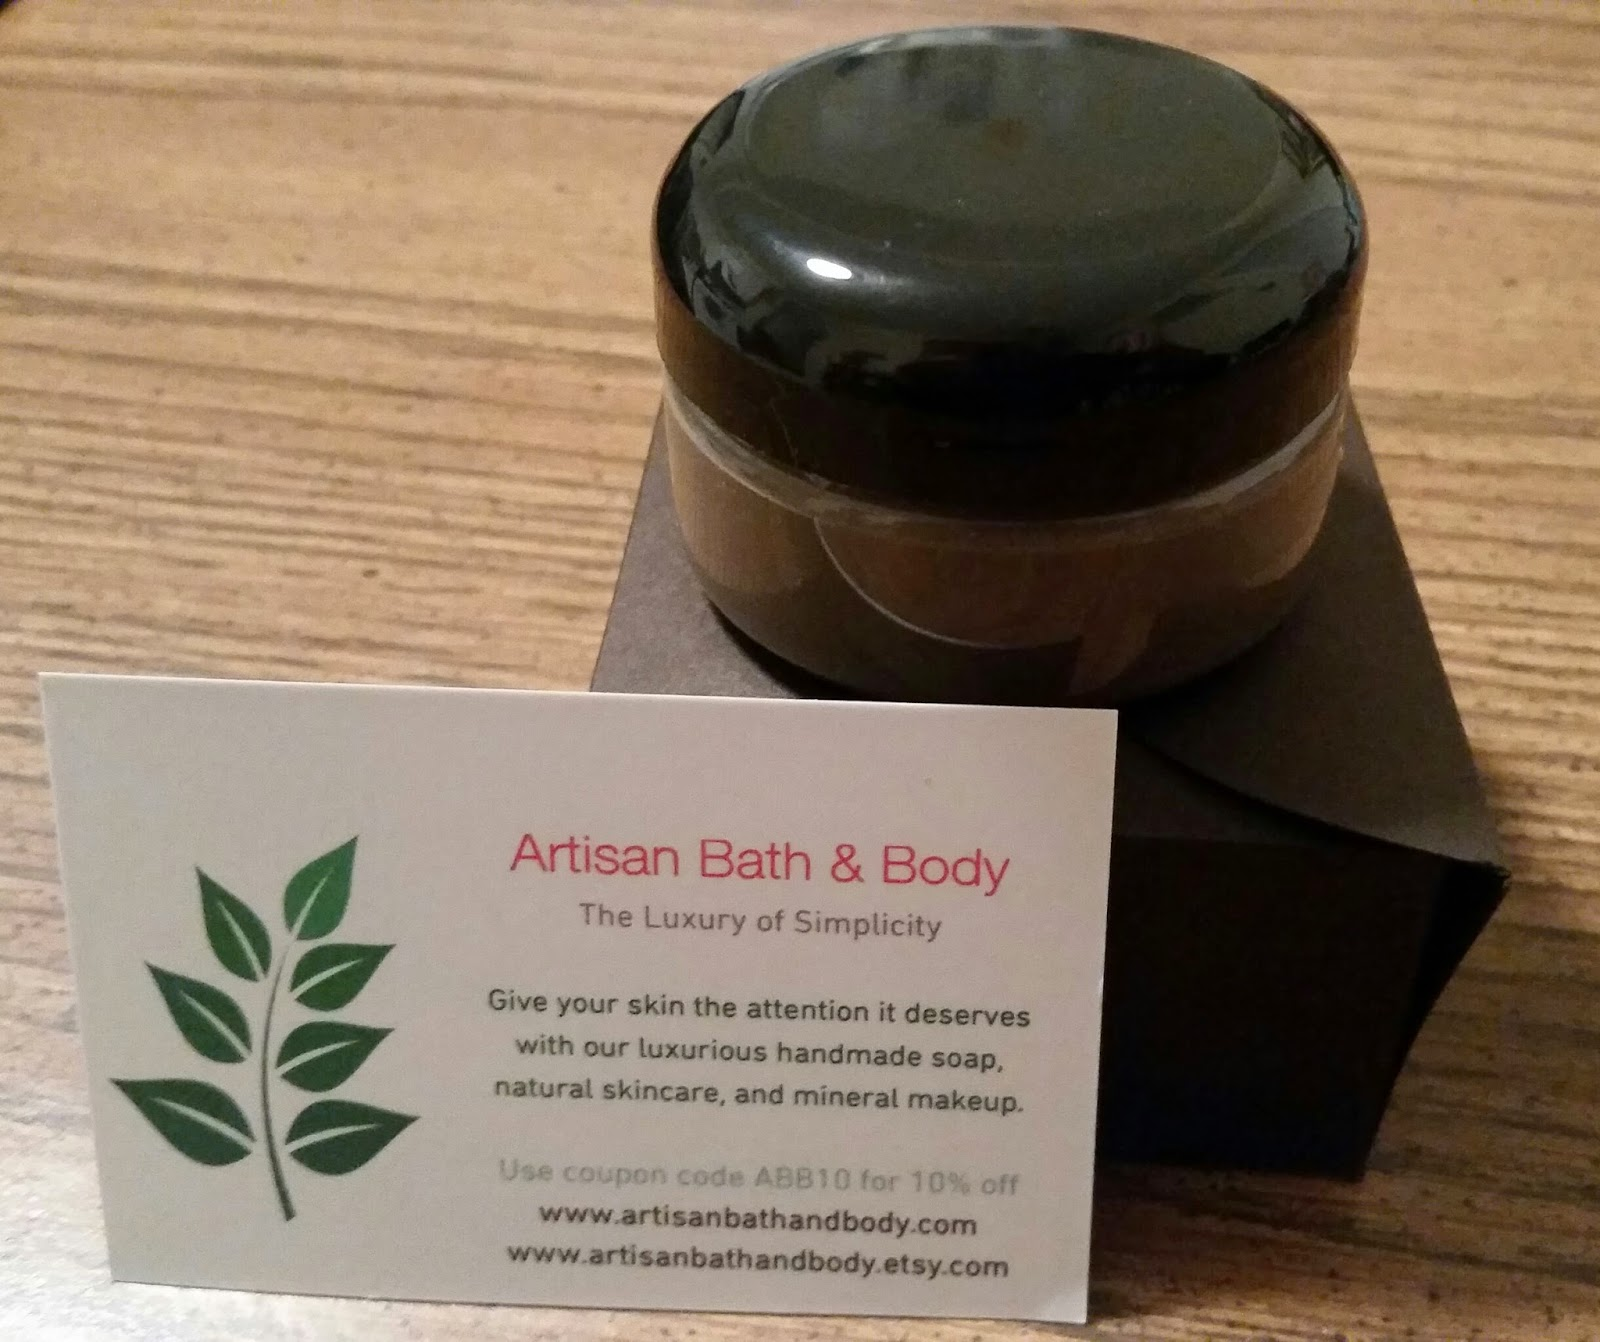 Dead Sea mud mask from Artisan Bath & Body